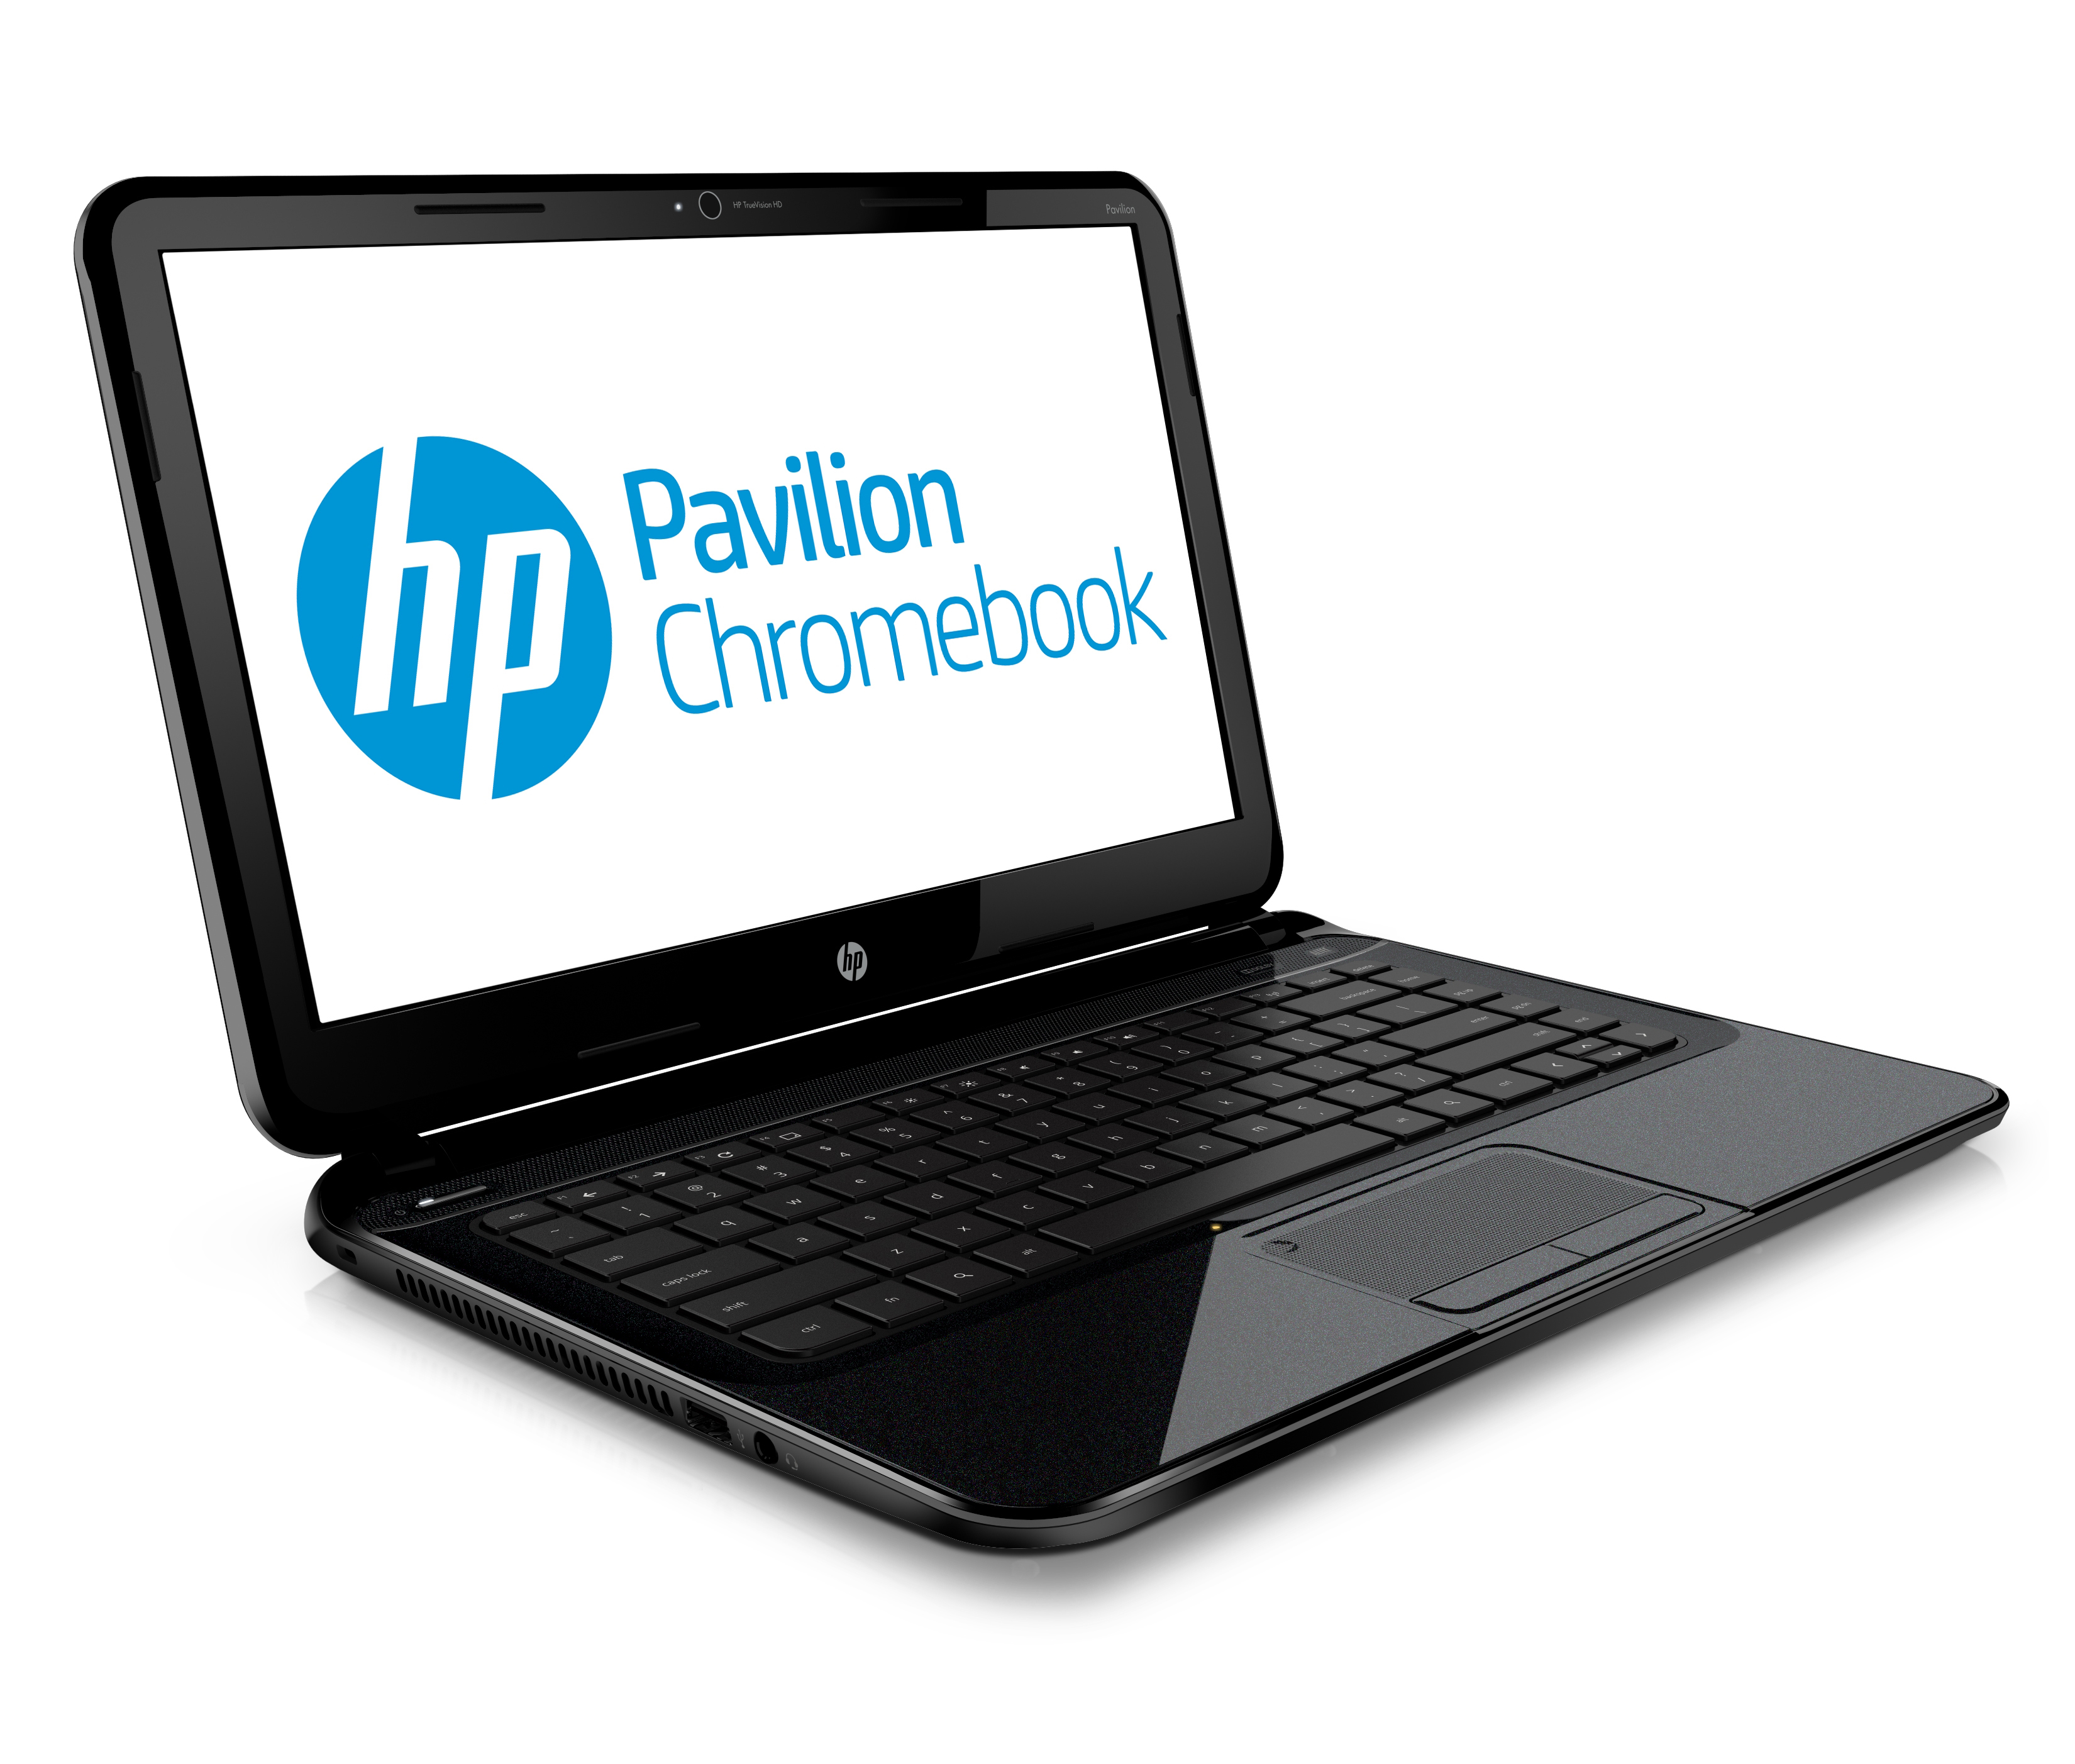 """HP Pavilion 14 Chromebook 14-c050nr Laptop Computer With 14"""" Screen and Intel Celeron Processor 847"""